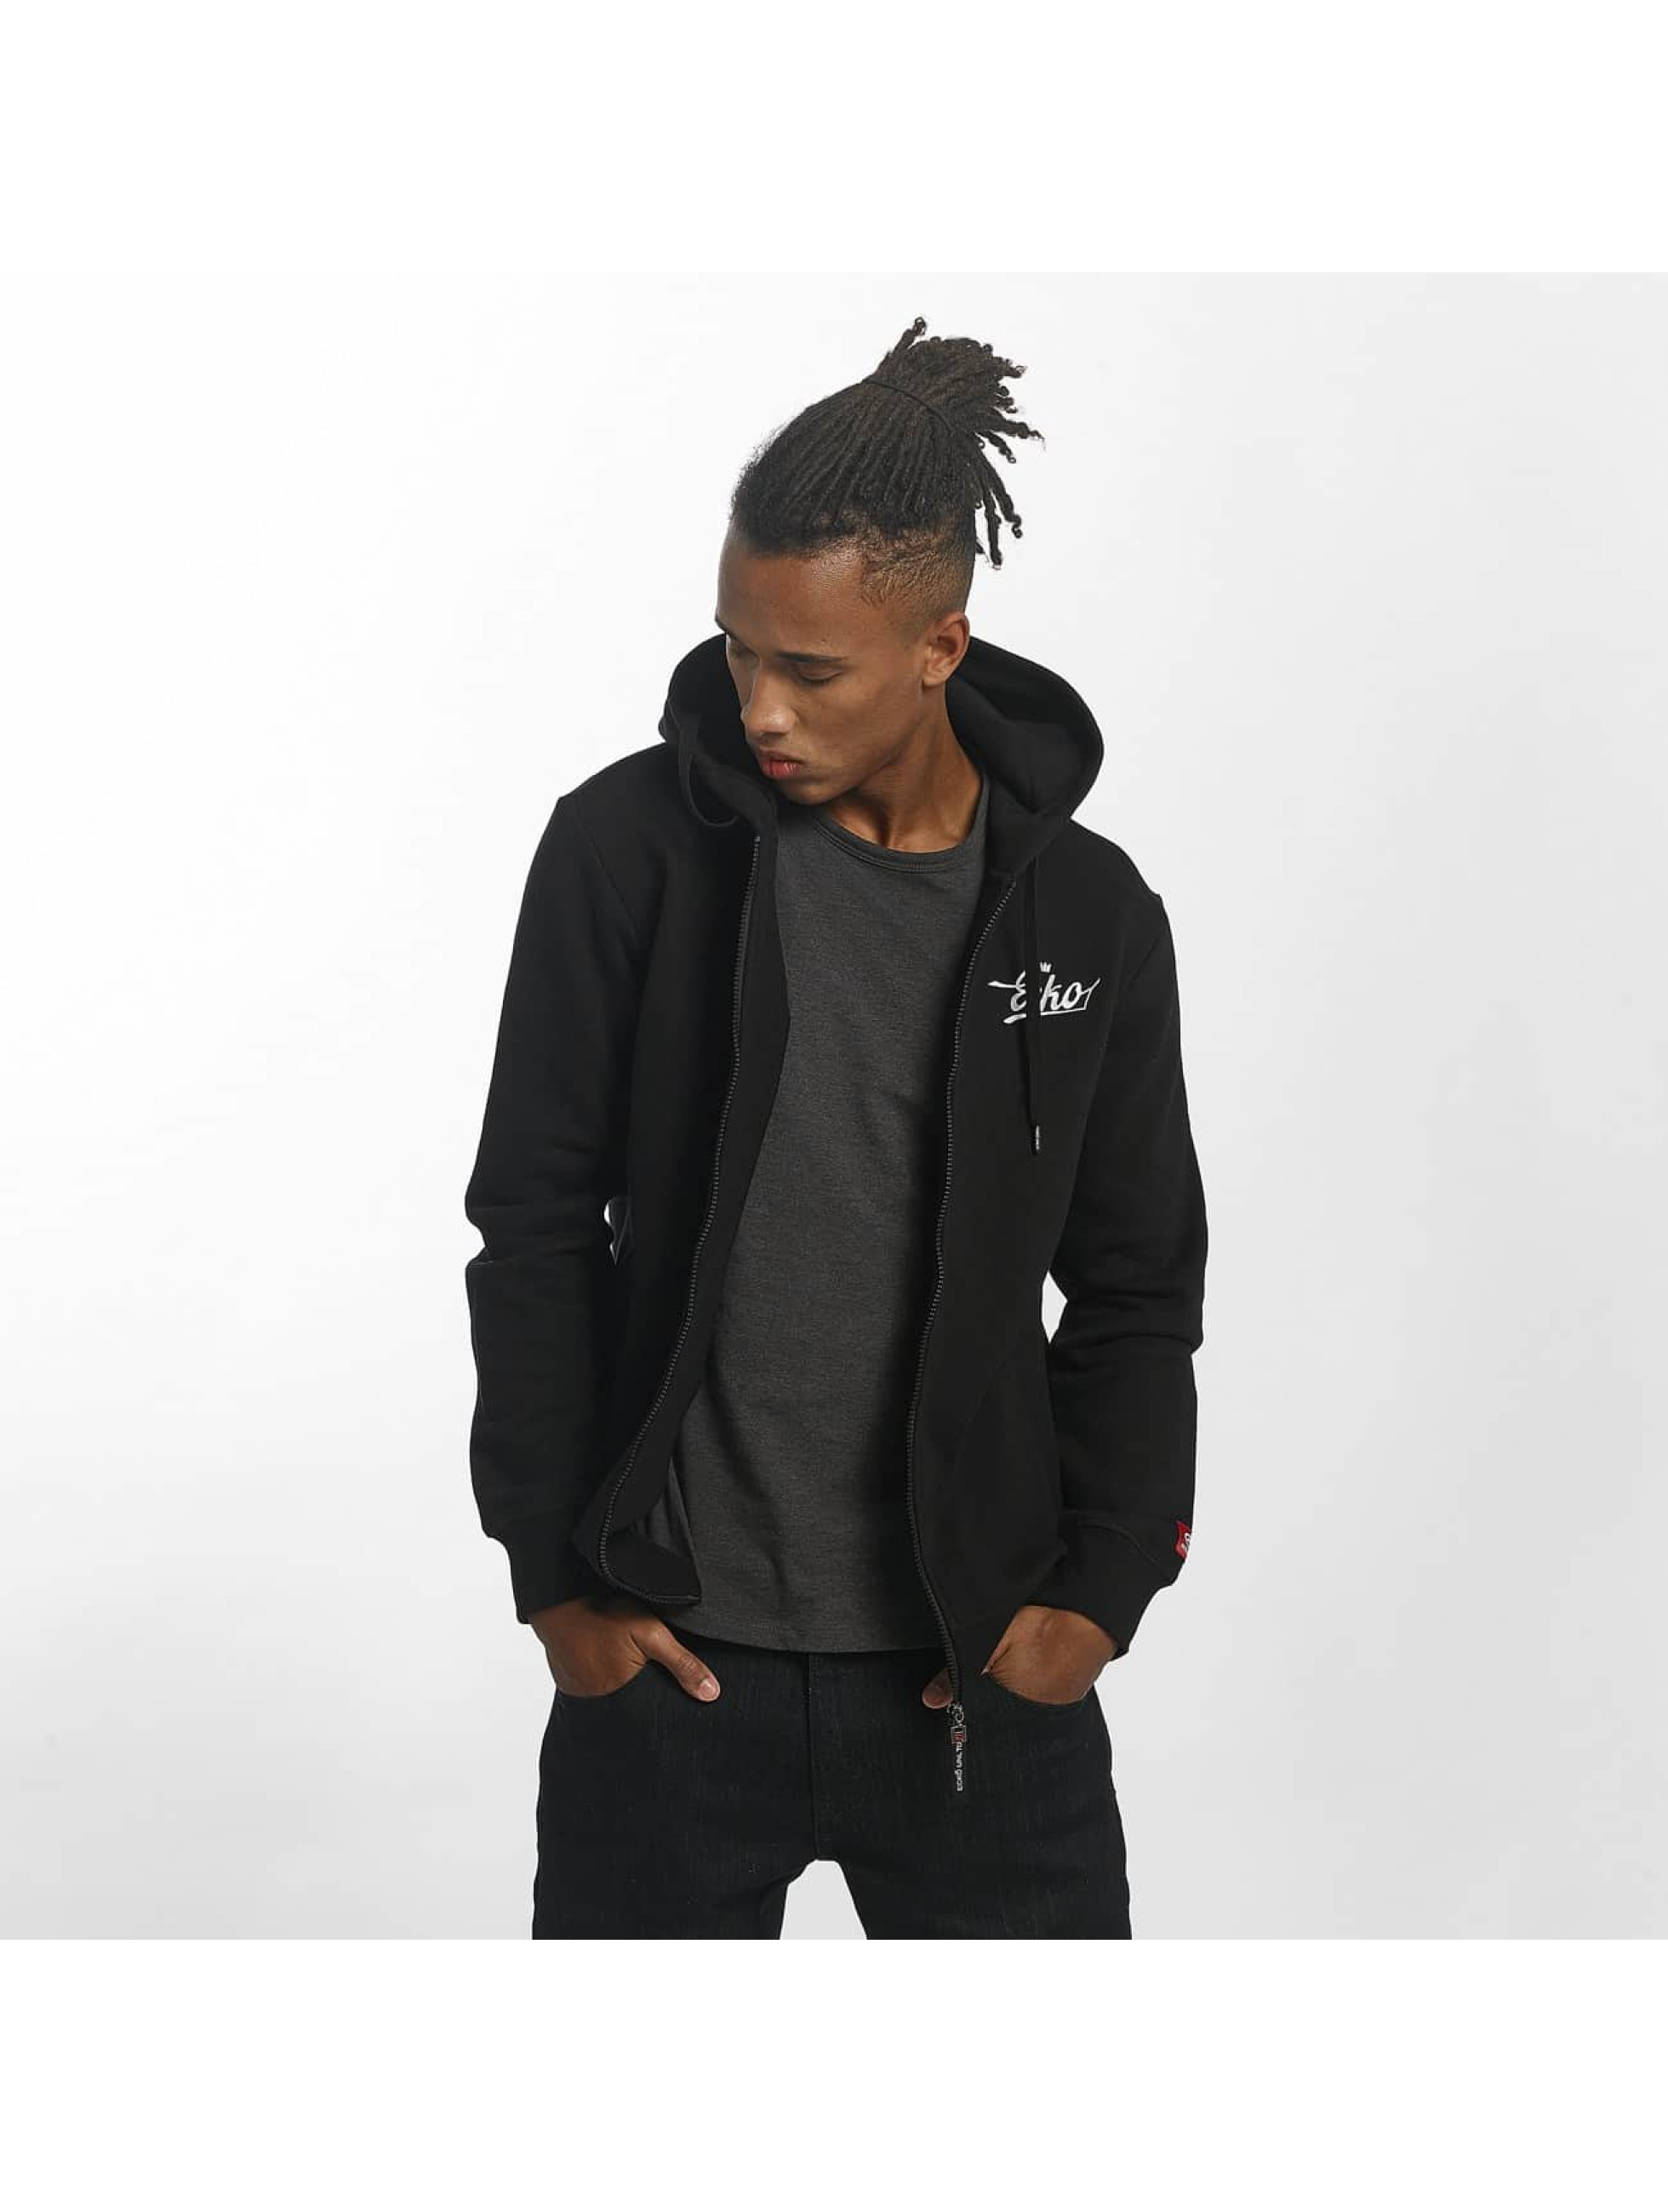 Ecko Unltd. / Zip Hoodie Back Print in black 4XL